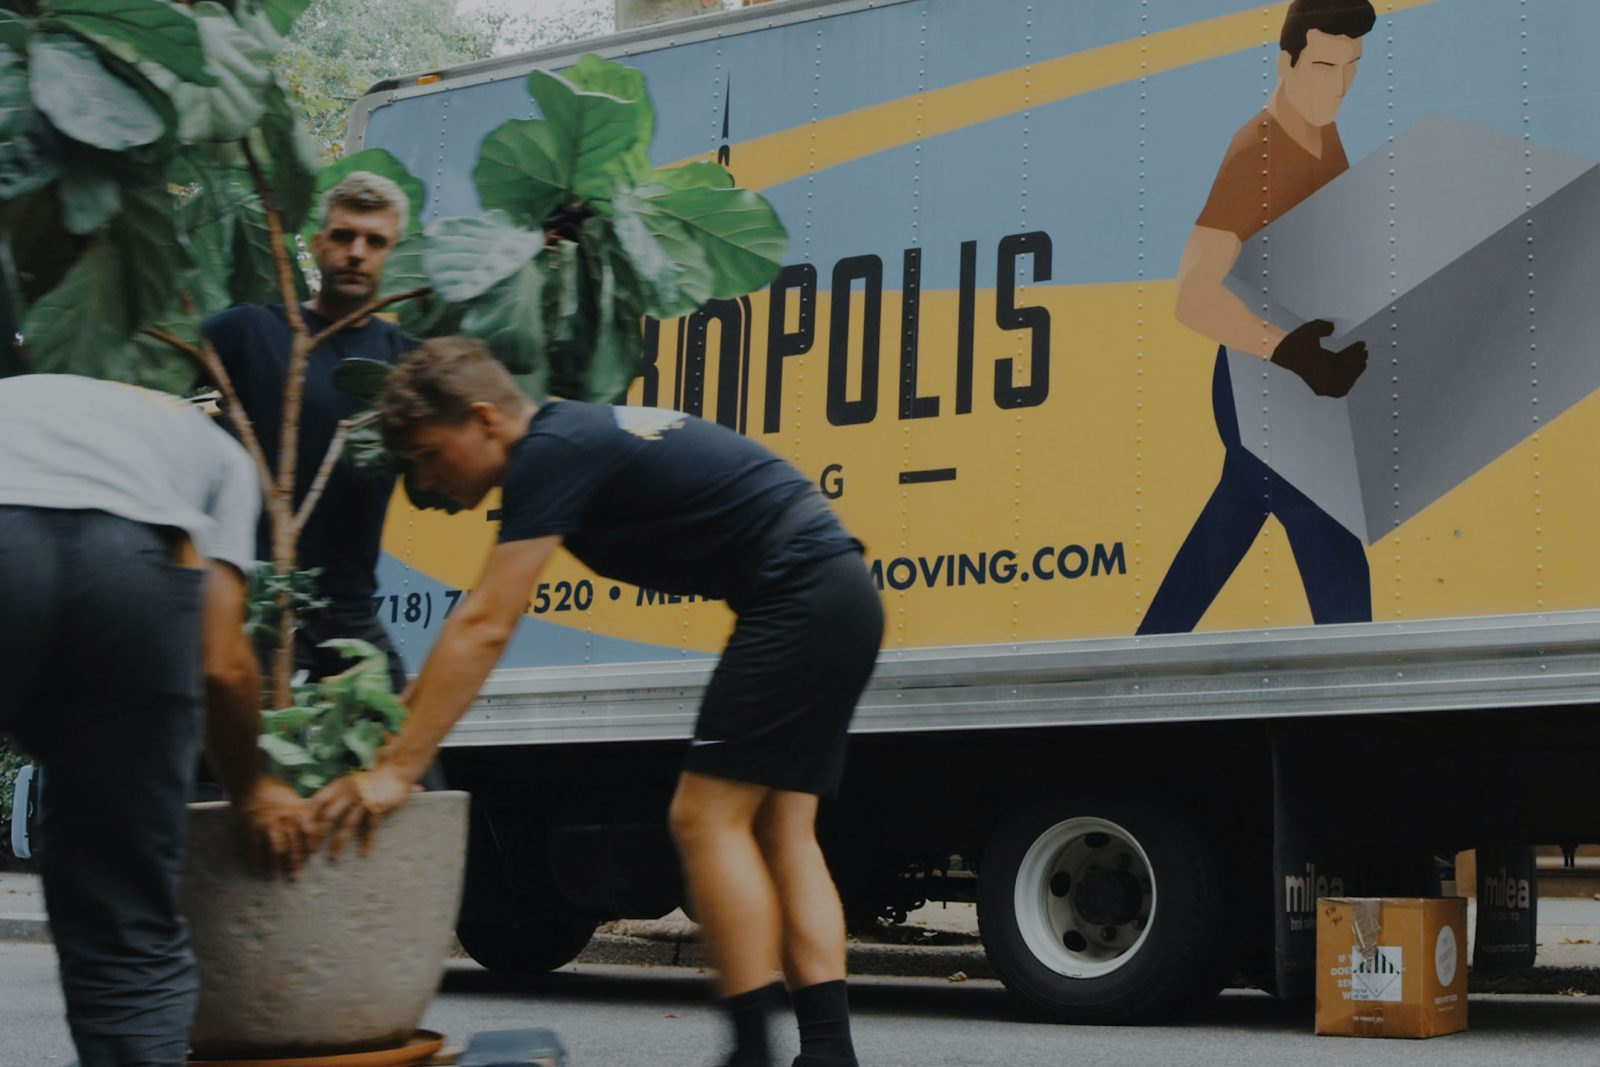 Websites built for movers